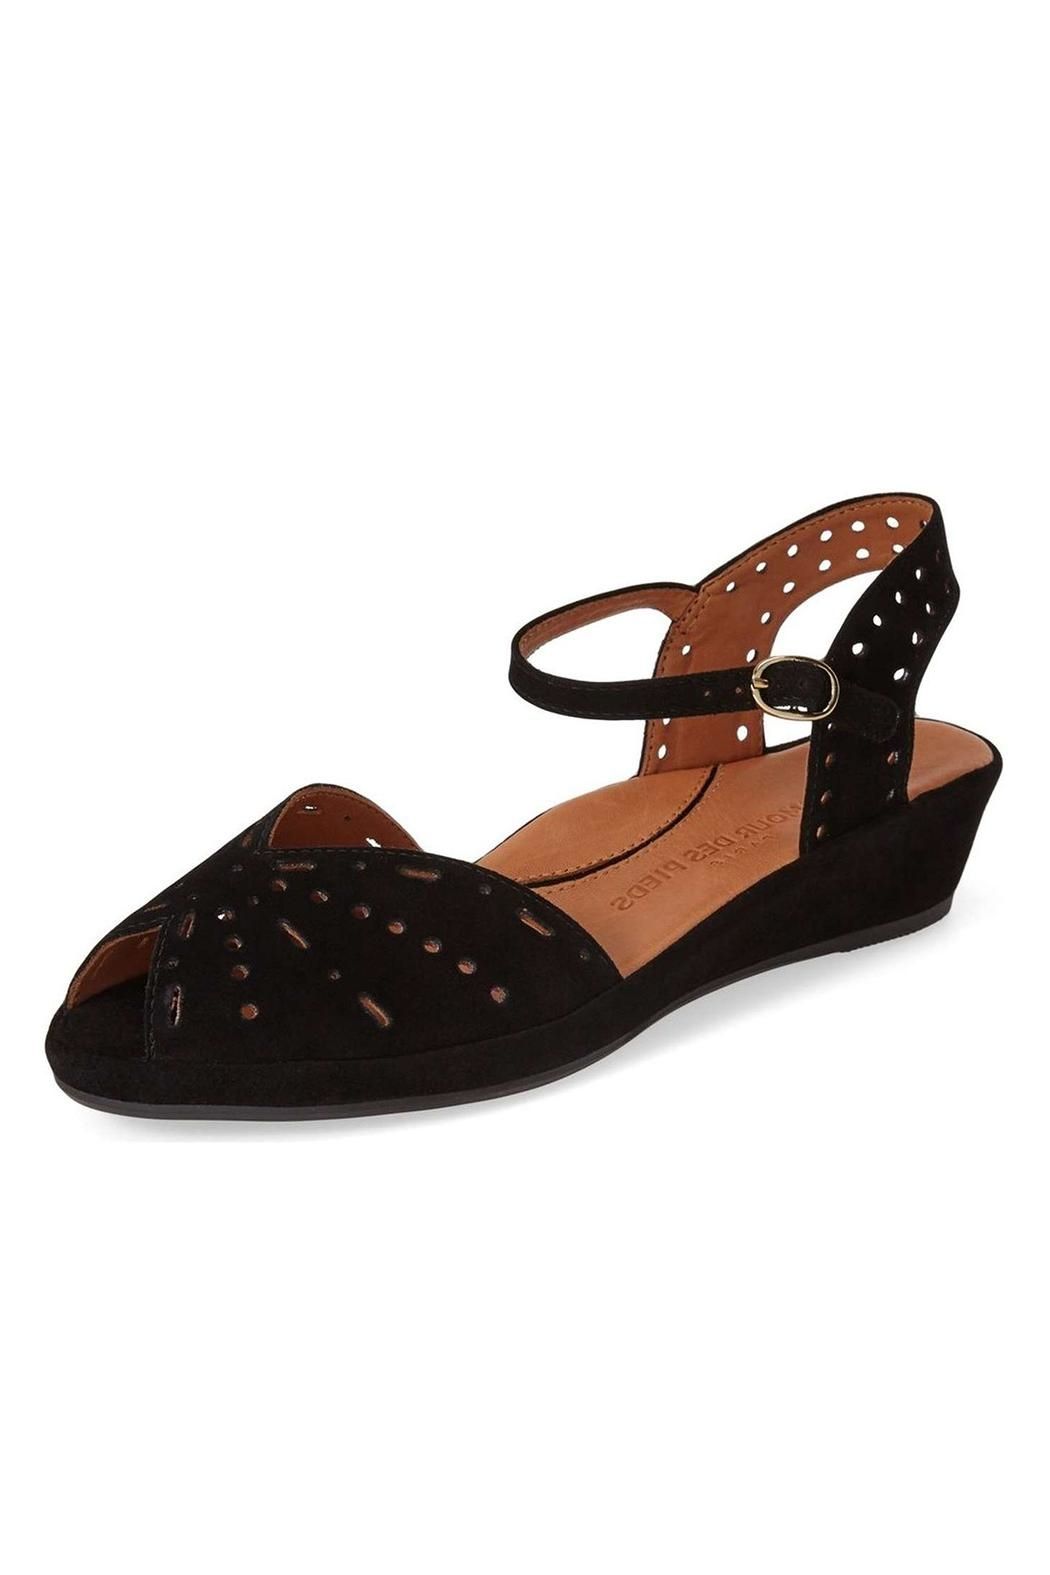 80acdad340df L Amour Des Pieds Brenn Sandal from New Jersey by ROXY SHOES ...